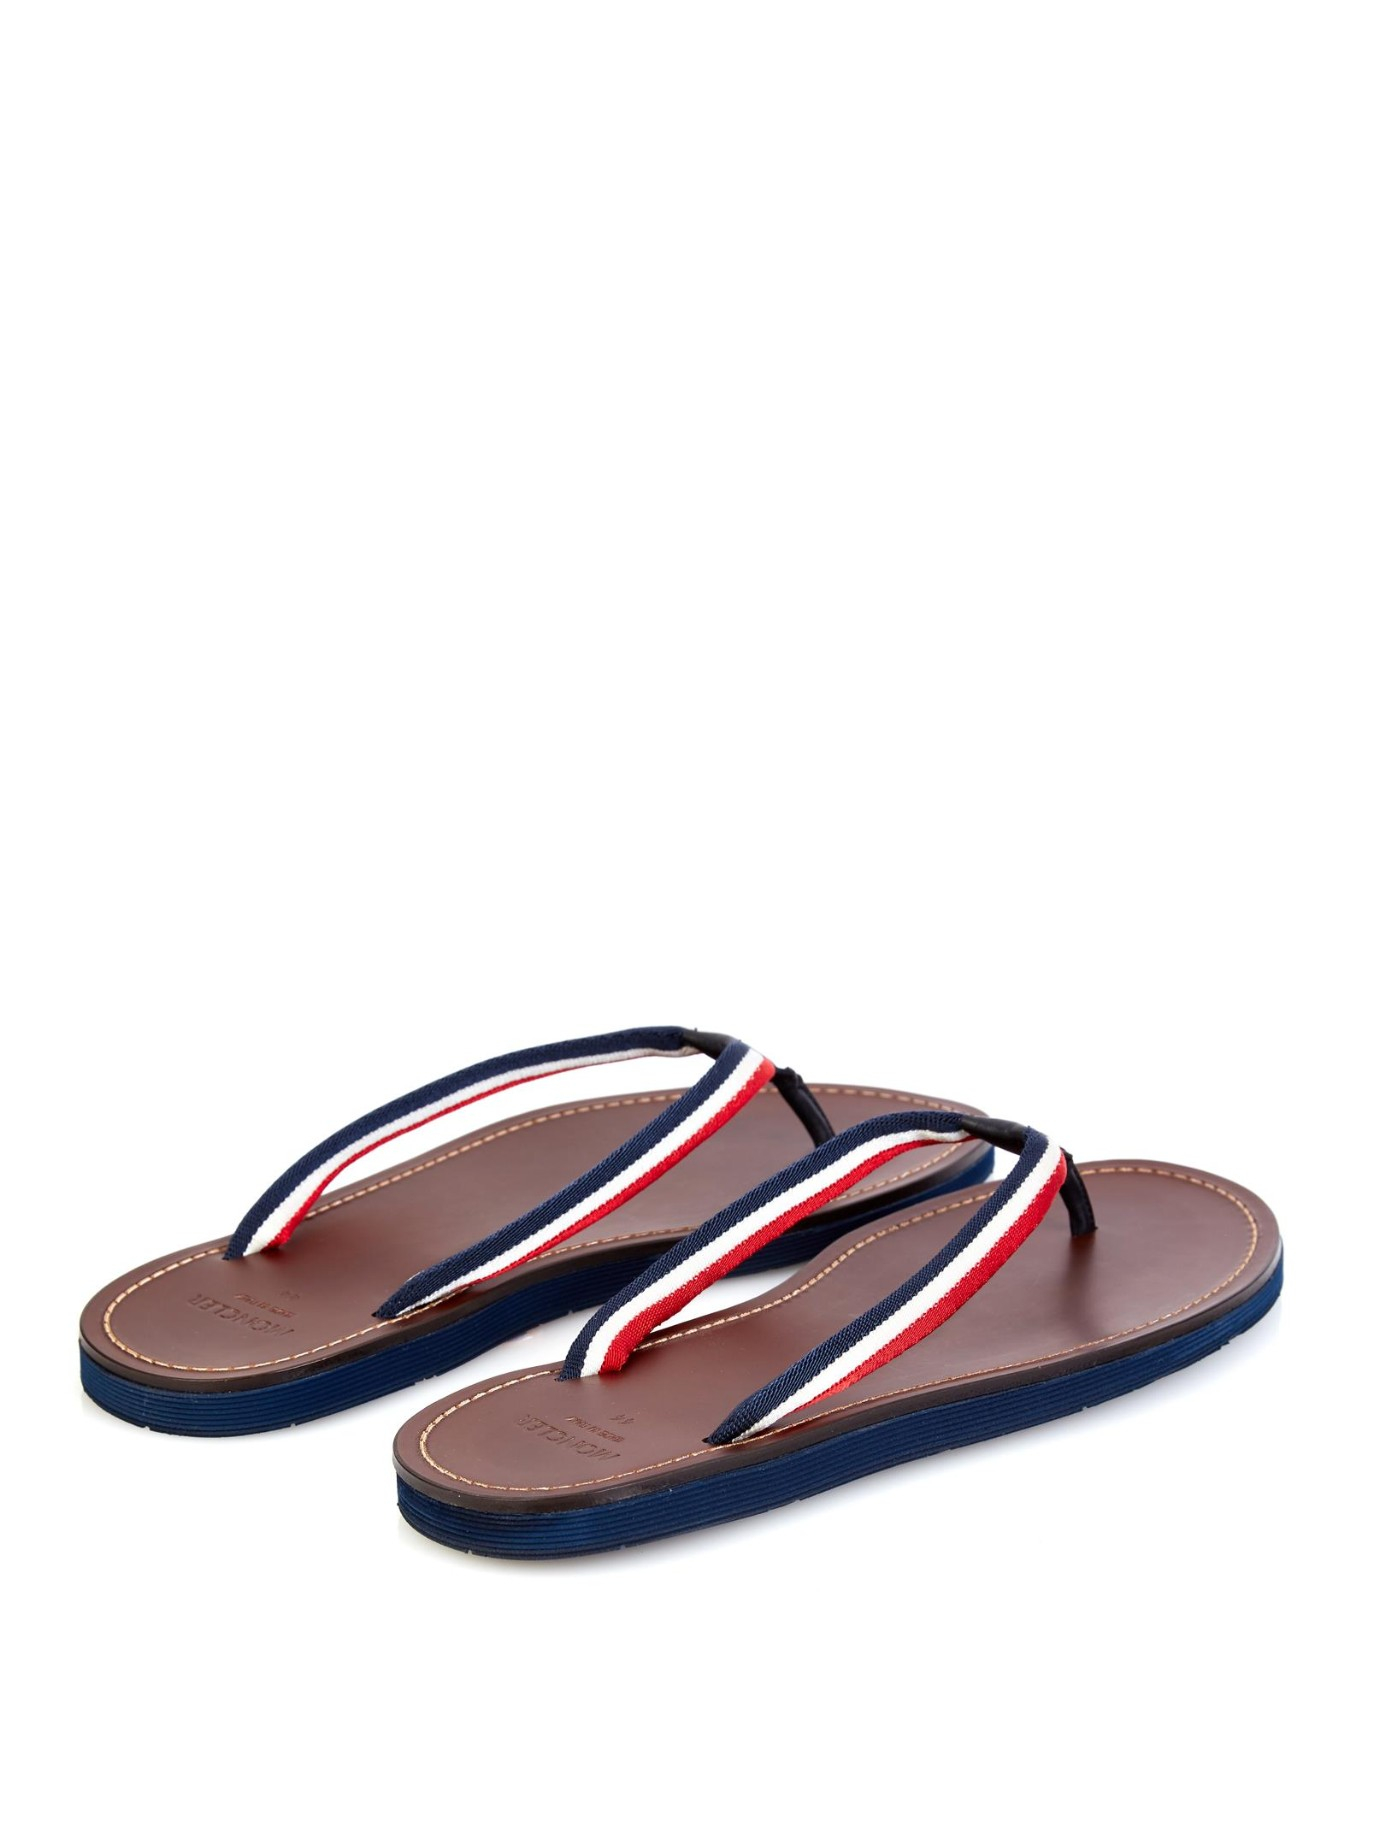 8d83f243f1d3 Lyst - Moncler Striped Canvas And Leather Flip-Flops in Brown for Men